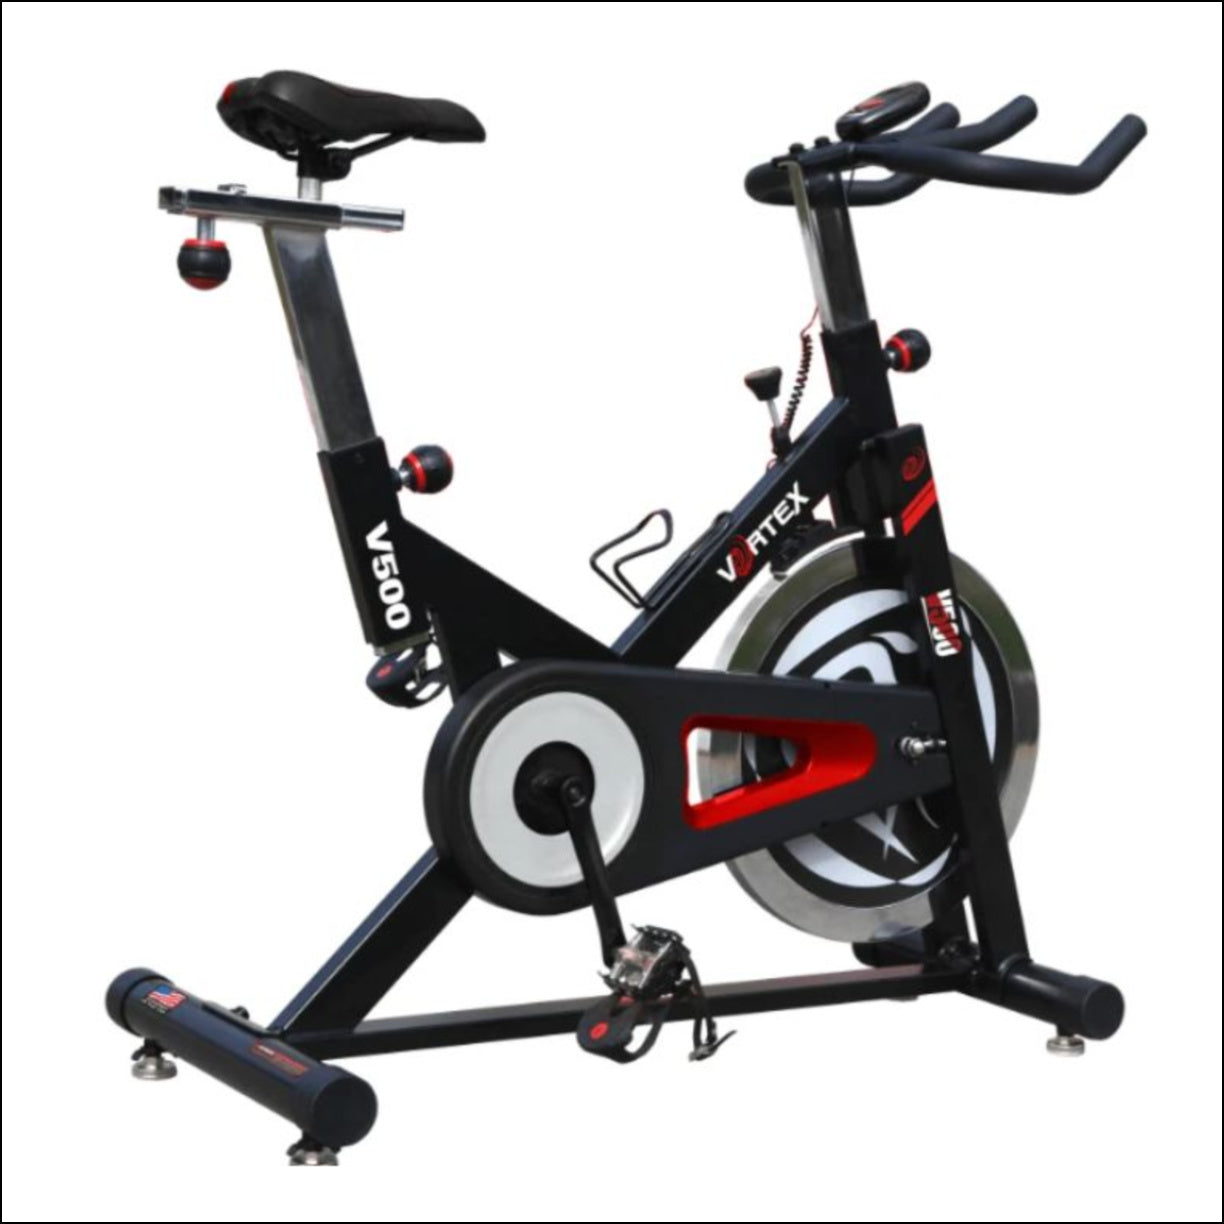 The Vortex V500 Spin Bike has been designed in the USA for anyone seeking a performance, quality spin bike to train confidently in the privacy of your own home.